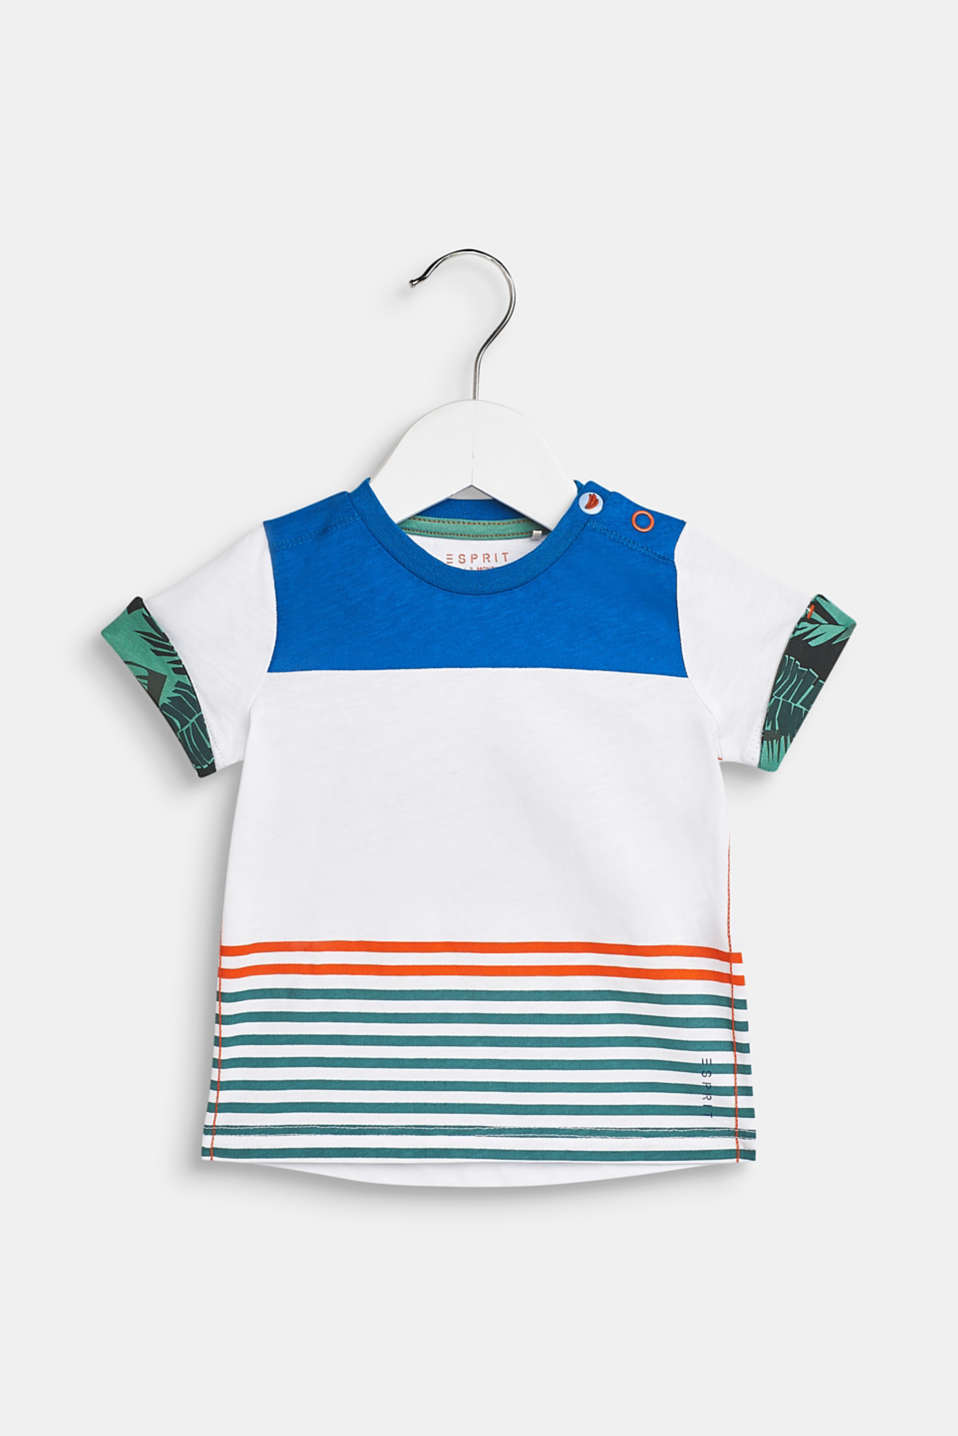 Esprit - Striped T-shirt, 100% cotton